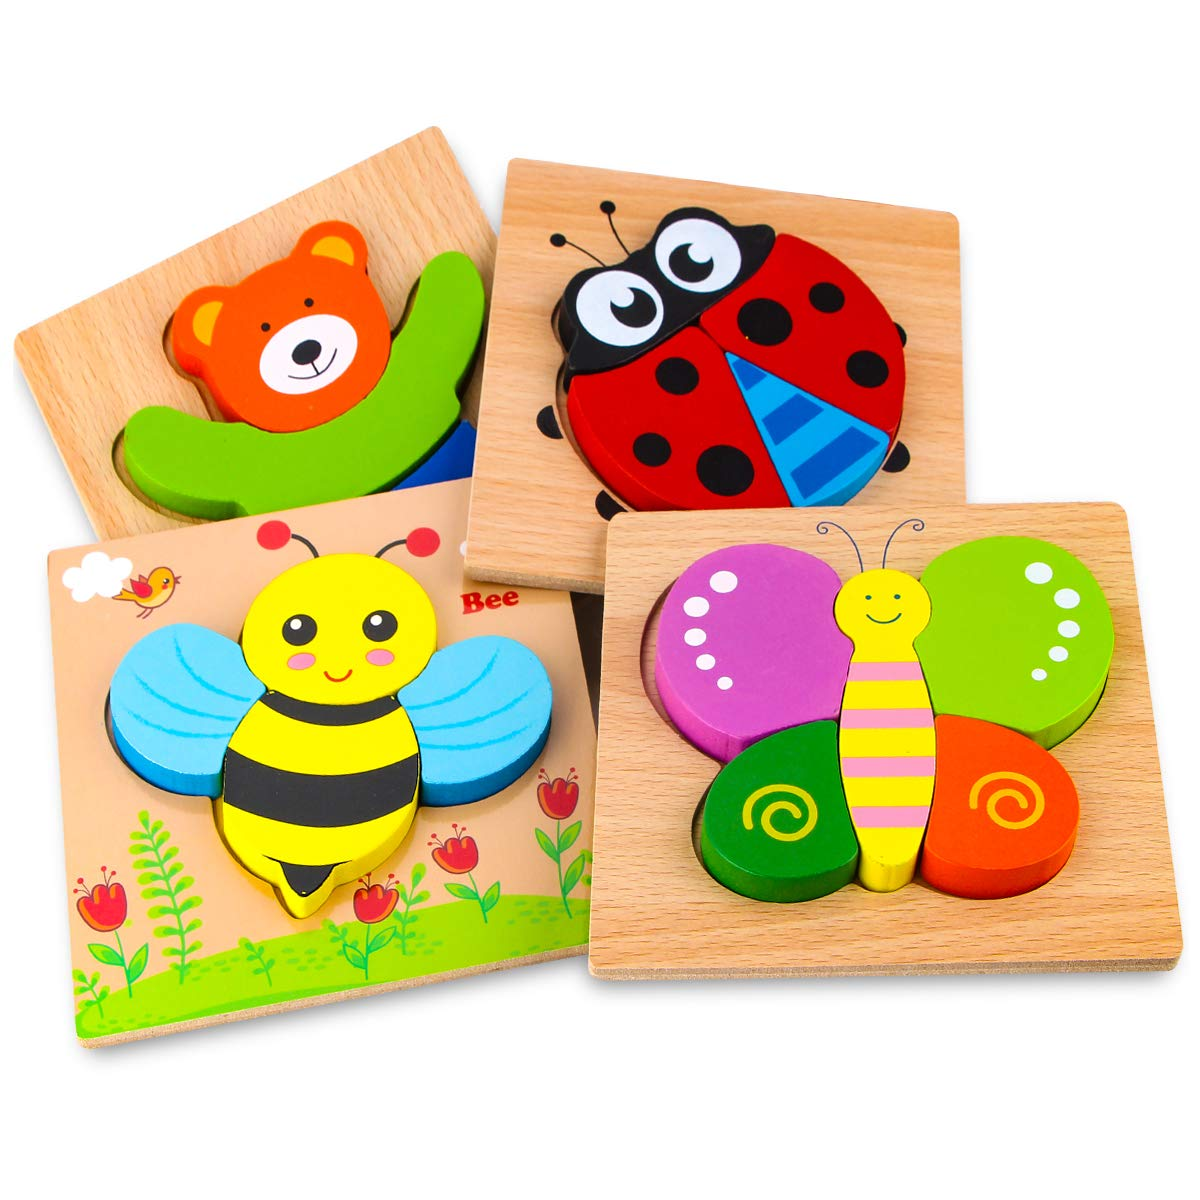 SKYFIELD Wooden Animal Jigsaw Puzzles for Toddlers 1 2 3 Years Old, Boys &Girls Educational Toys Gift with 4 Animals Patterns, Bright Vibrant Color Shapes (Animal)